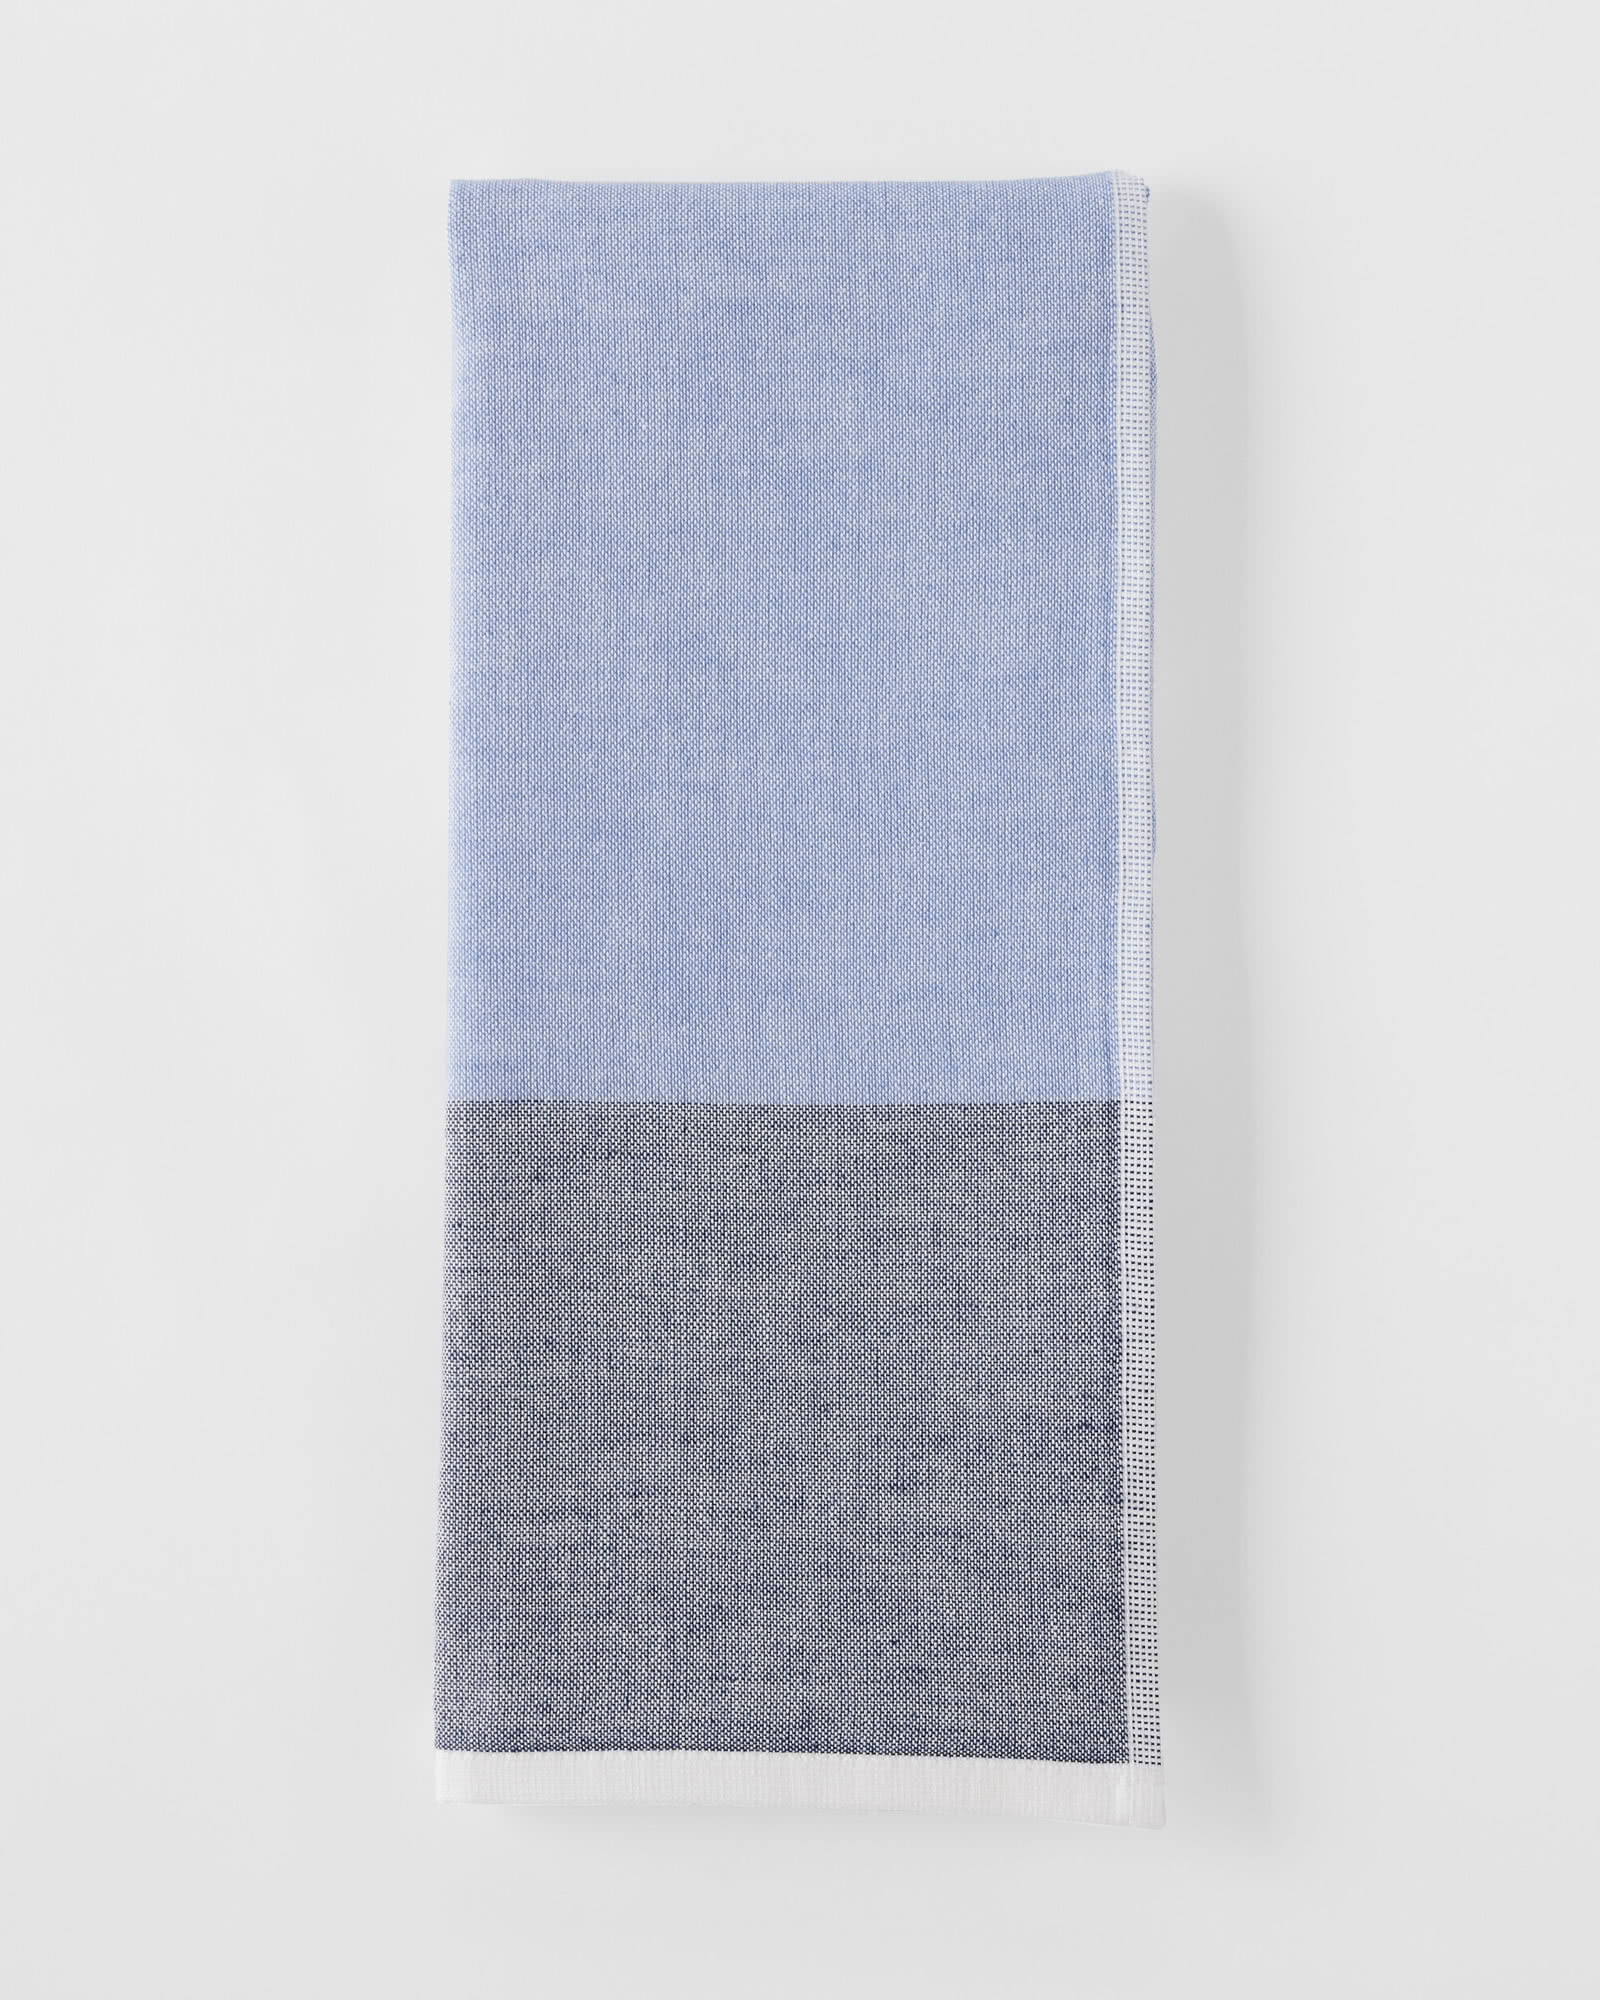 Color Block Fouta Hand Towel, Navy/Chambray